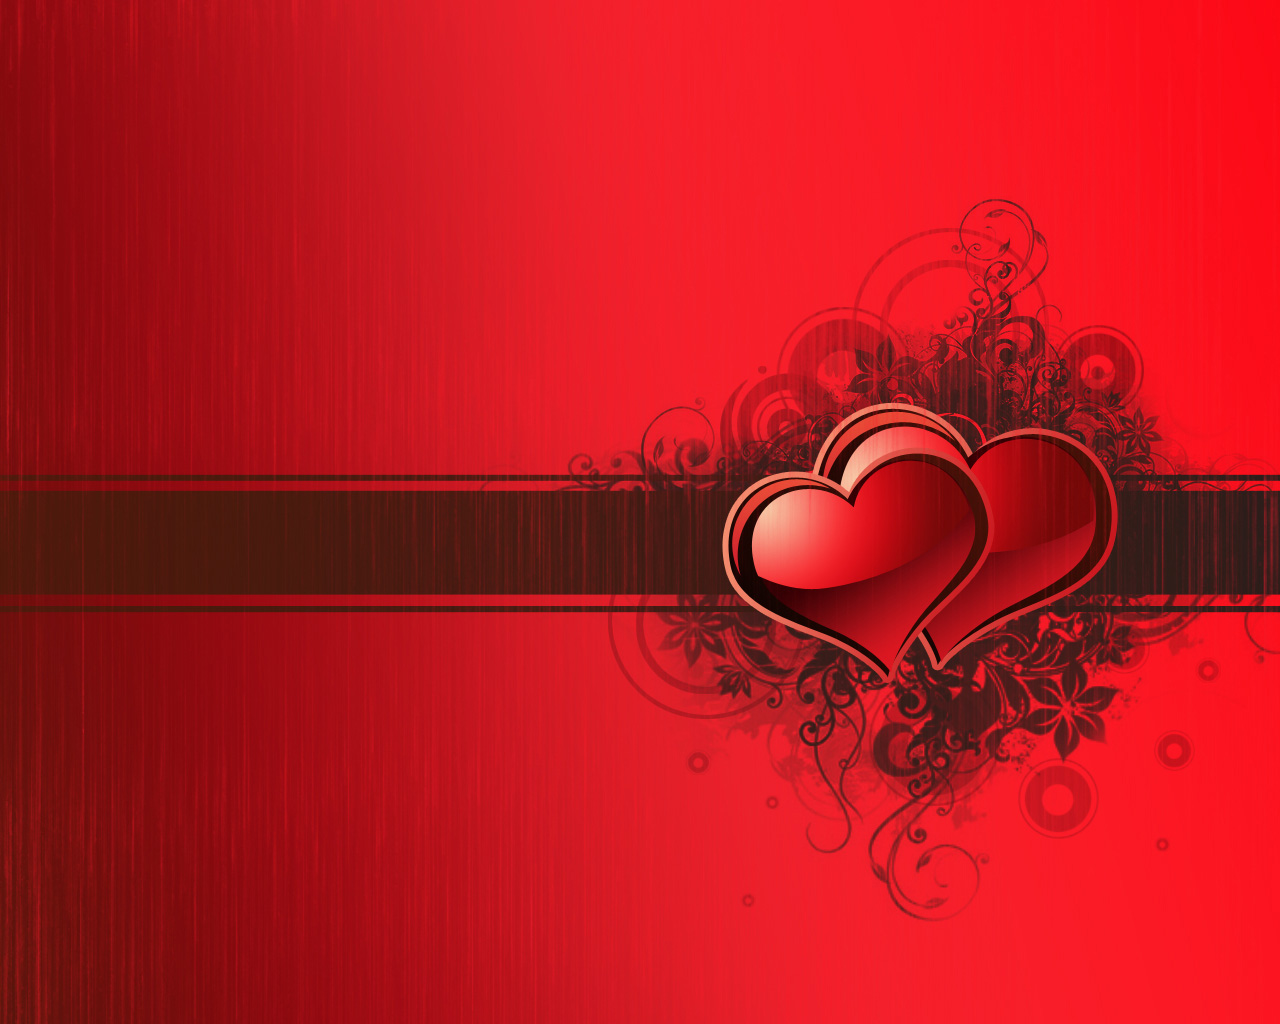 Love Greeting Hd Wallpaper : Happy Valentine Day 2013 HD Wallpapers Happy Valentine day 2013 wallpapers, SMS, quotes ...